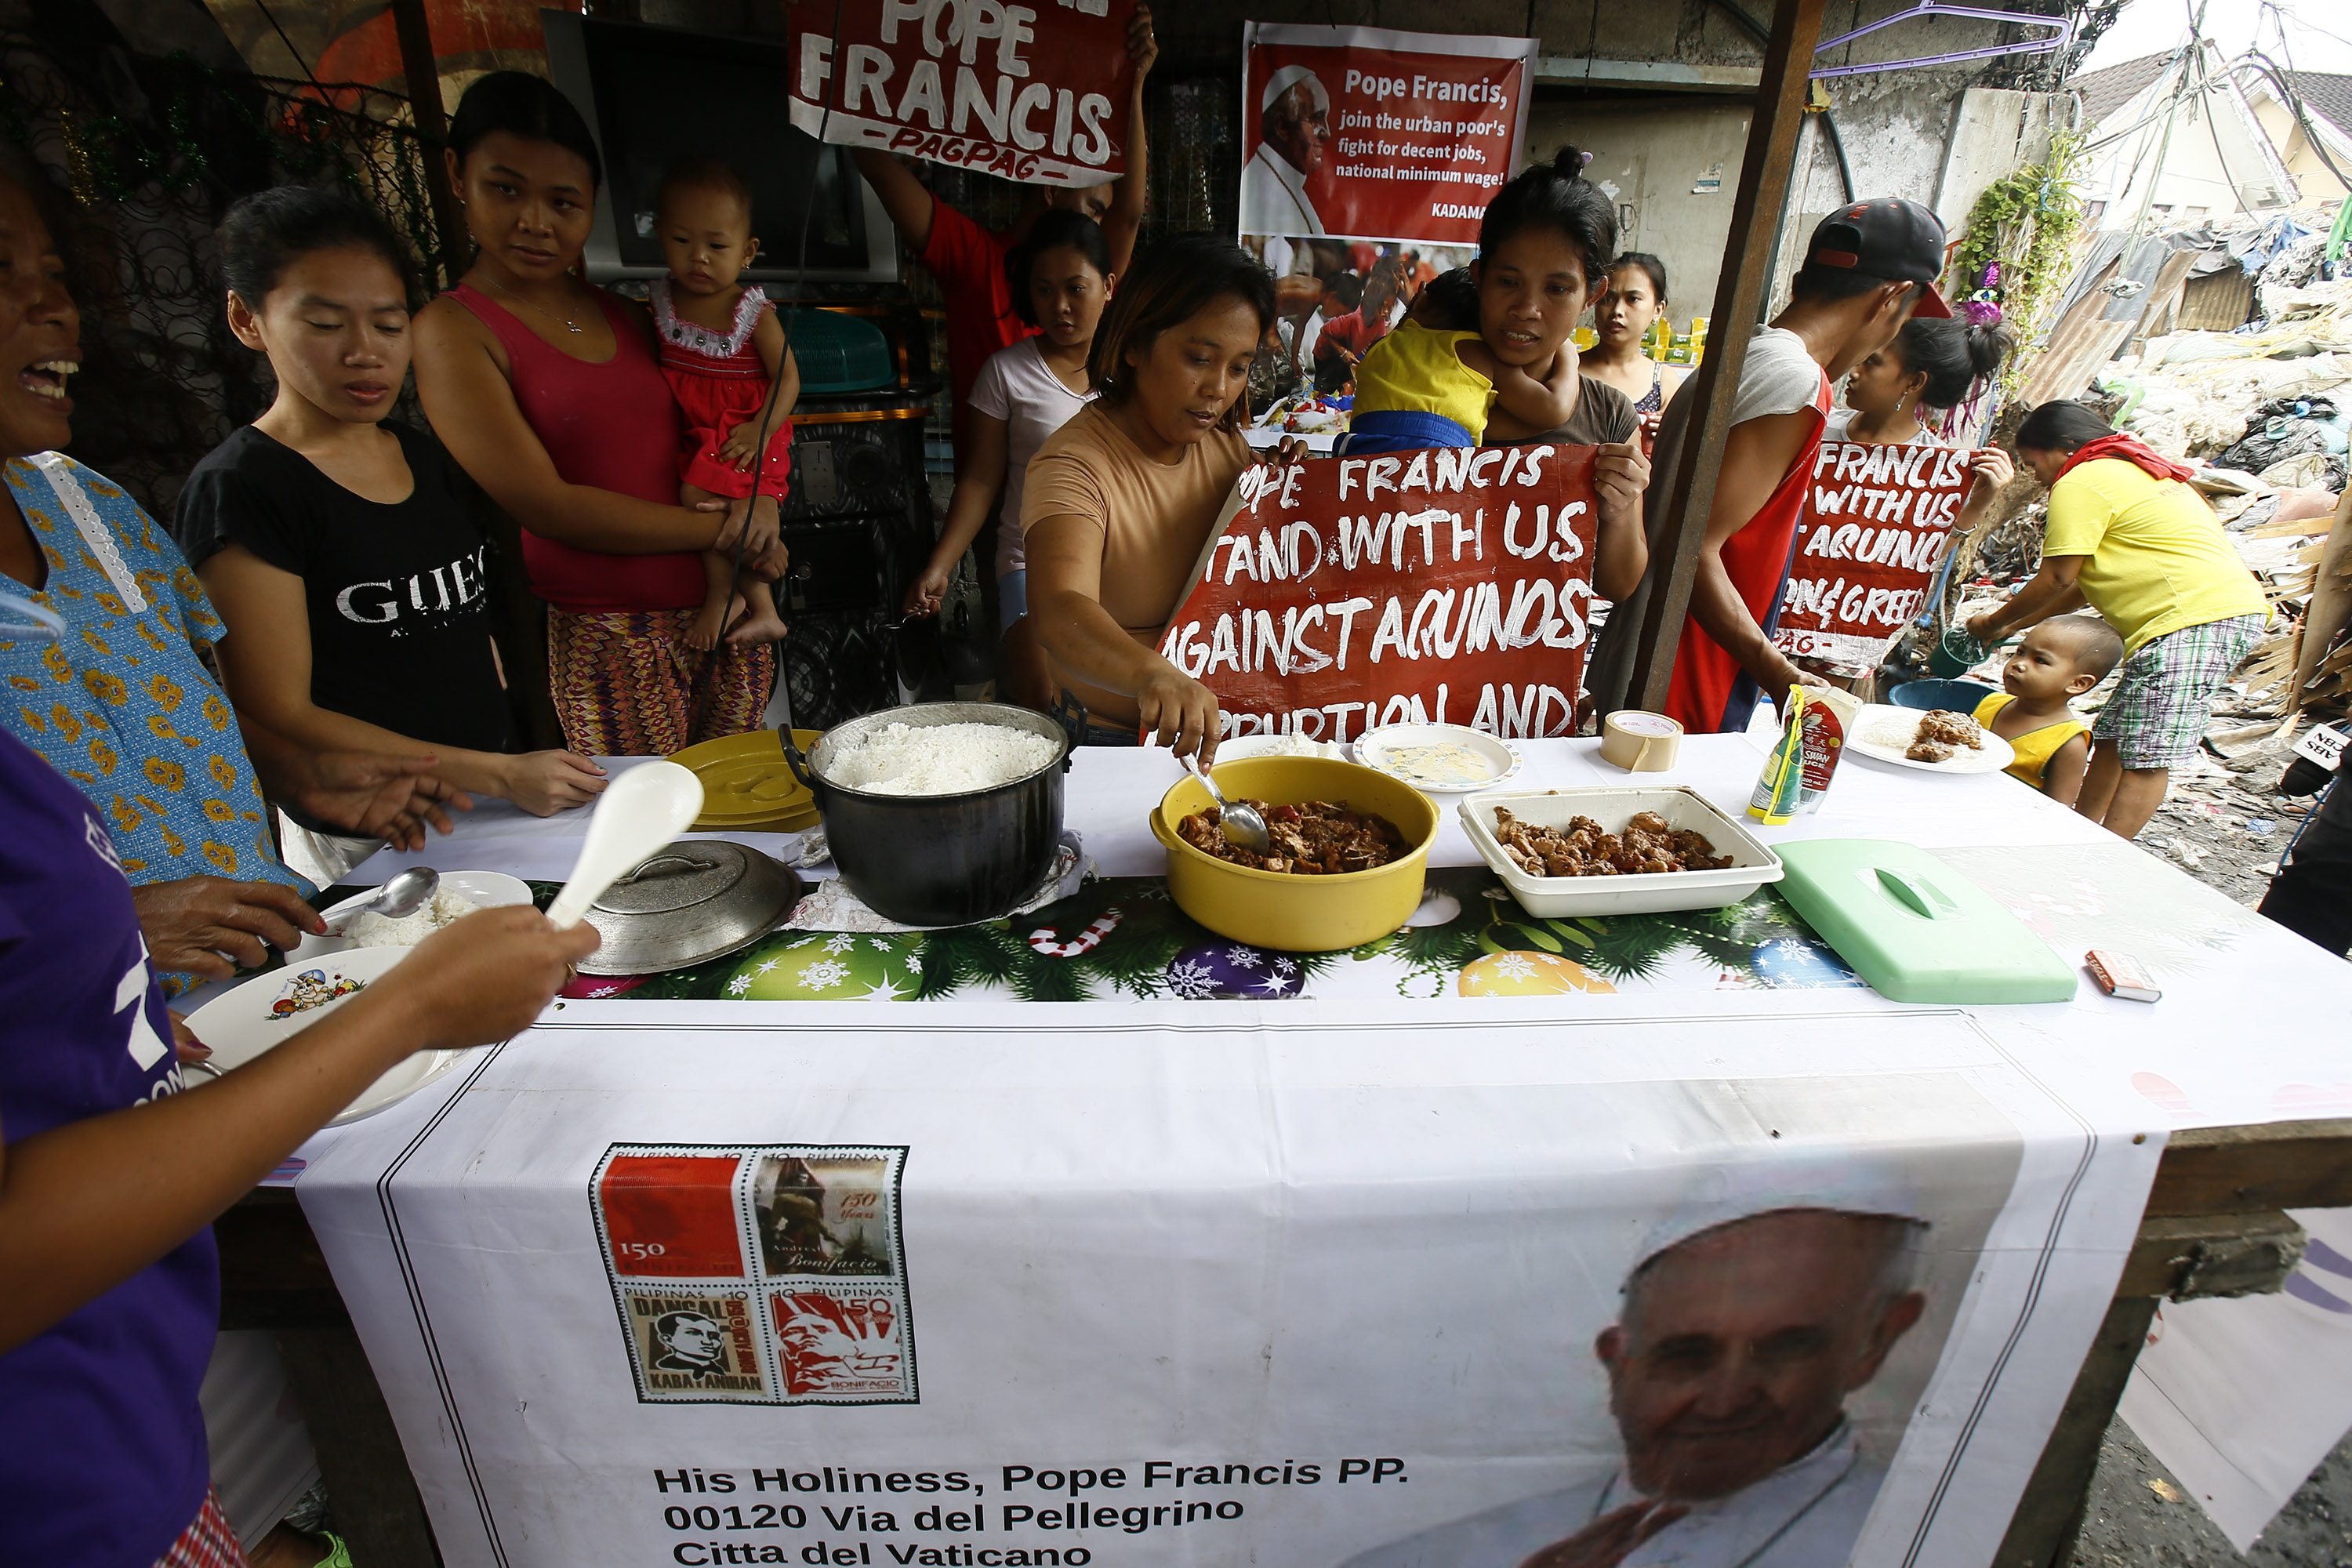 PHILIPPINE SITUATION. Filipino food scavengers eat 'pagpag' (recycled food) meal collected from the Payatas dump site ahead of Pope Francis' visit in Quezon City in January 2015. File photo by Dennis Sabangan/EPA